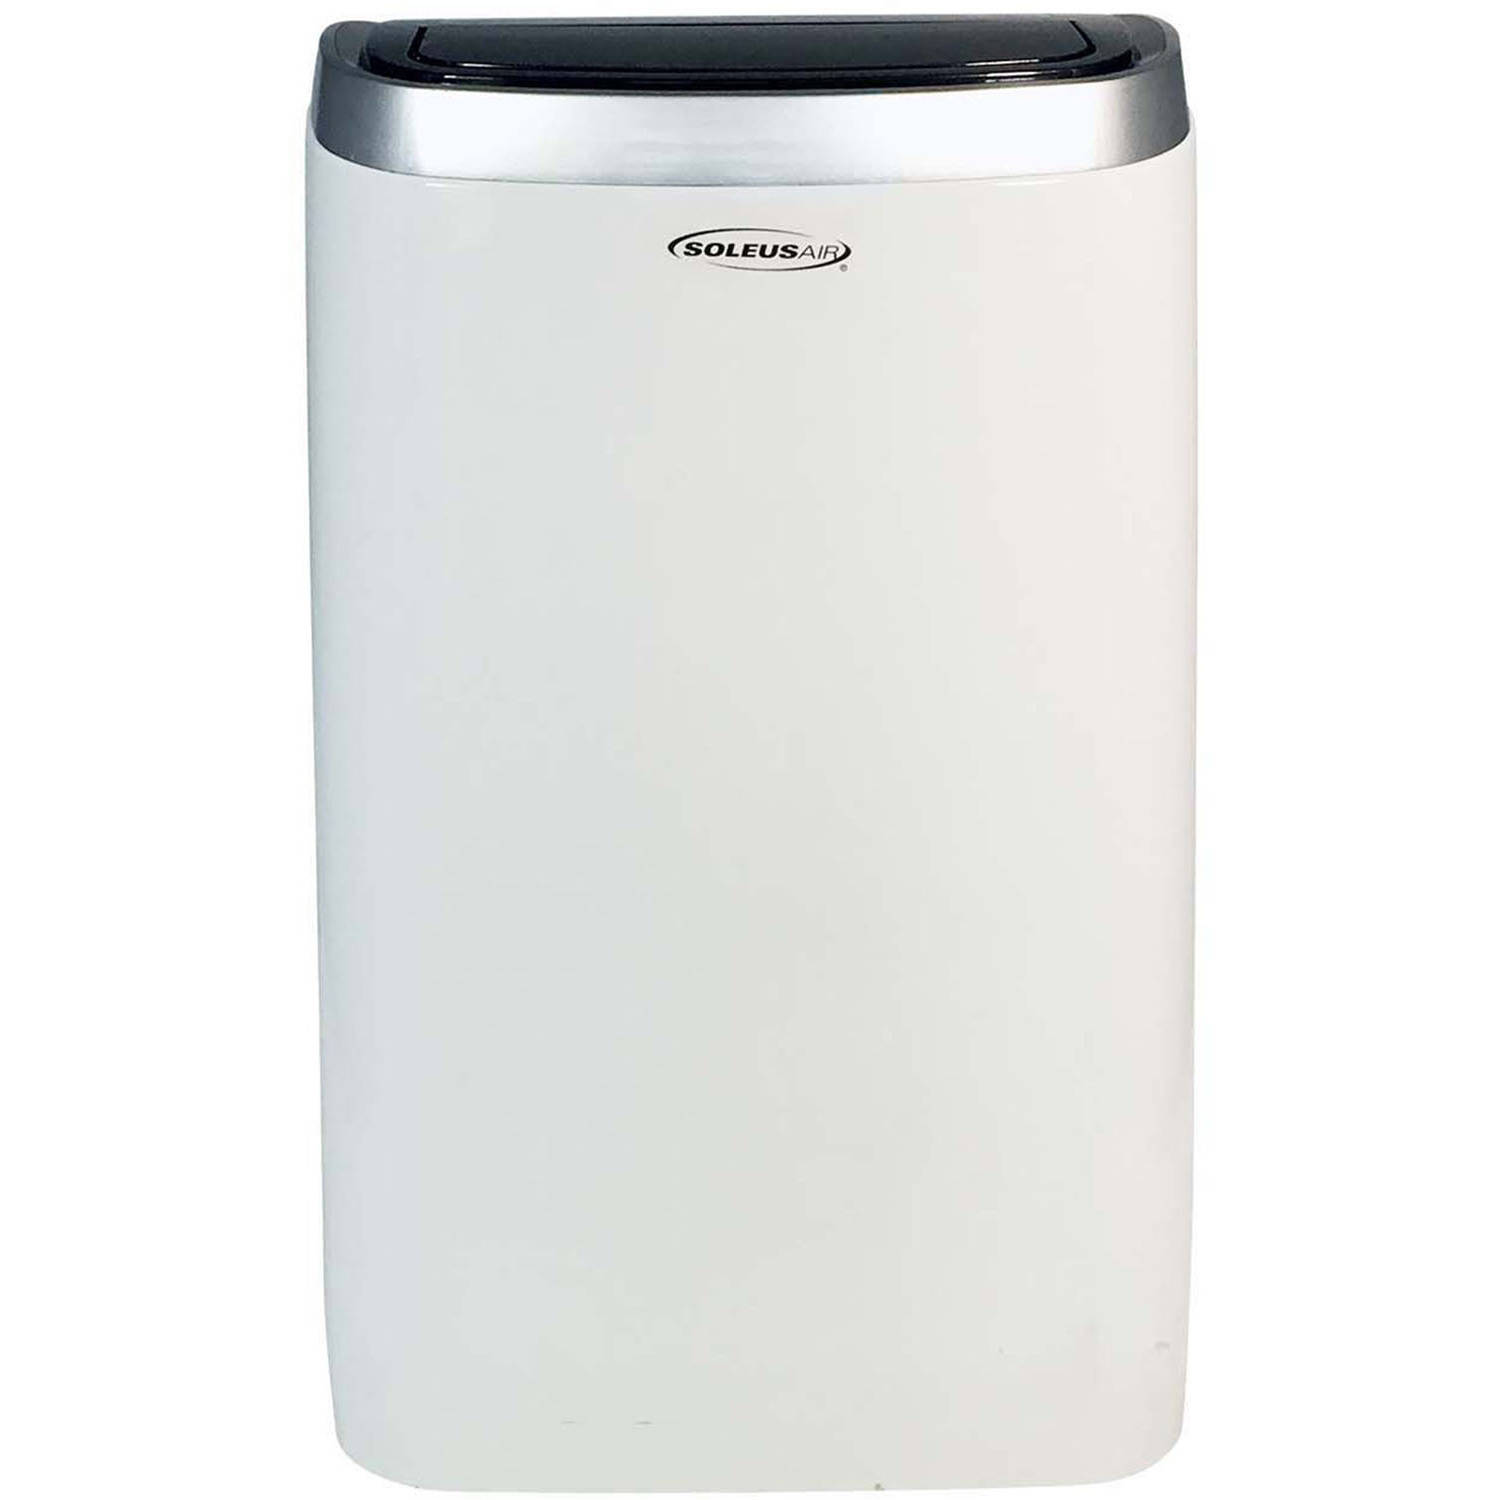 SoleusAir 14,000 BTU Portable Air Conditioner with 11,000 BTU Supplemental Heat and MyTemp Remote